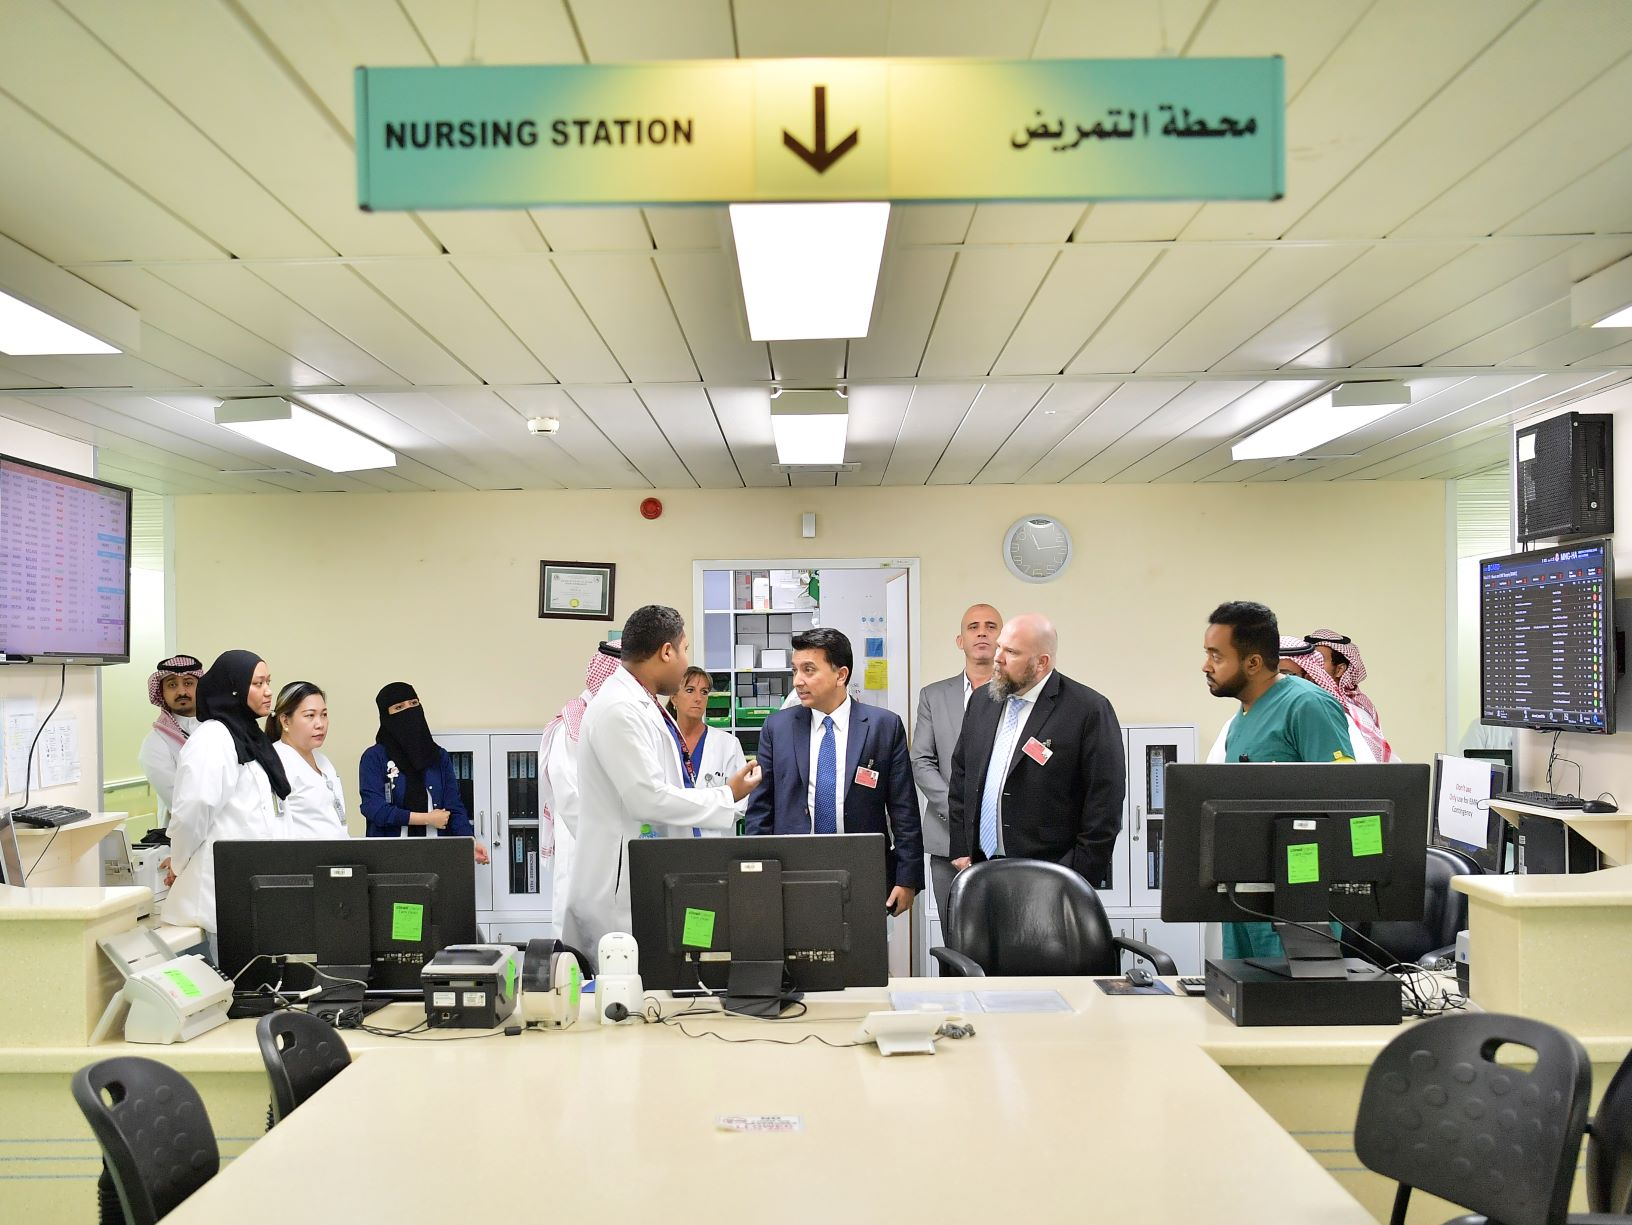 Riyadh hospital King Abdulaziz Medical City achieves EMRAM Stage 7 - Healthcare IT News